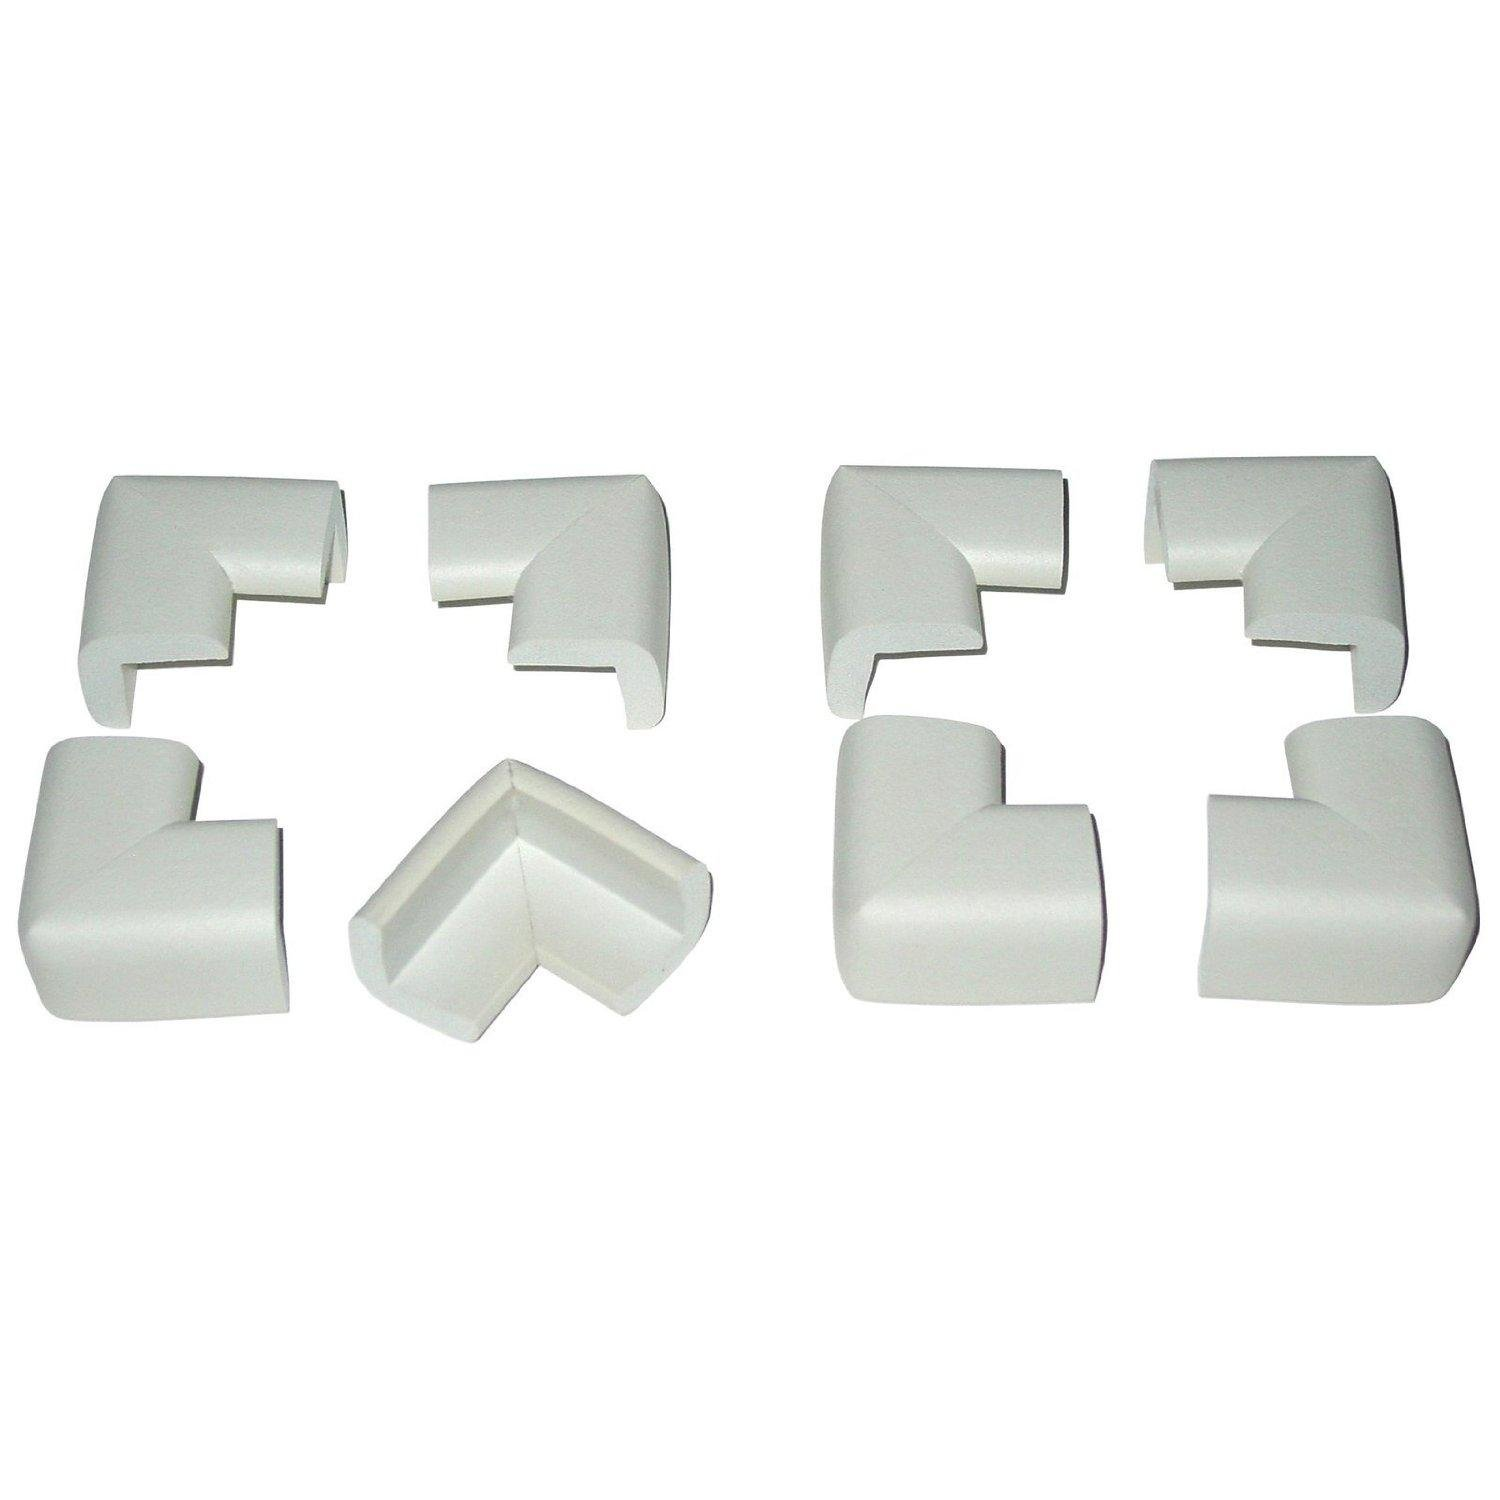 Toddler Kusions for Corners (8 Pack) White